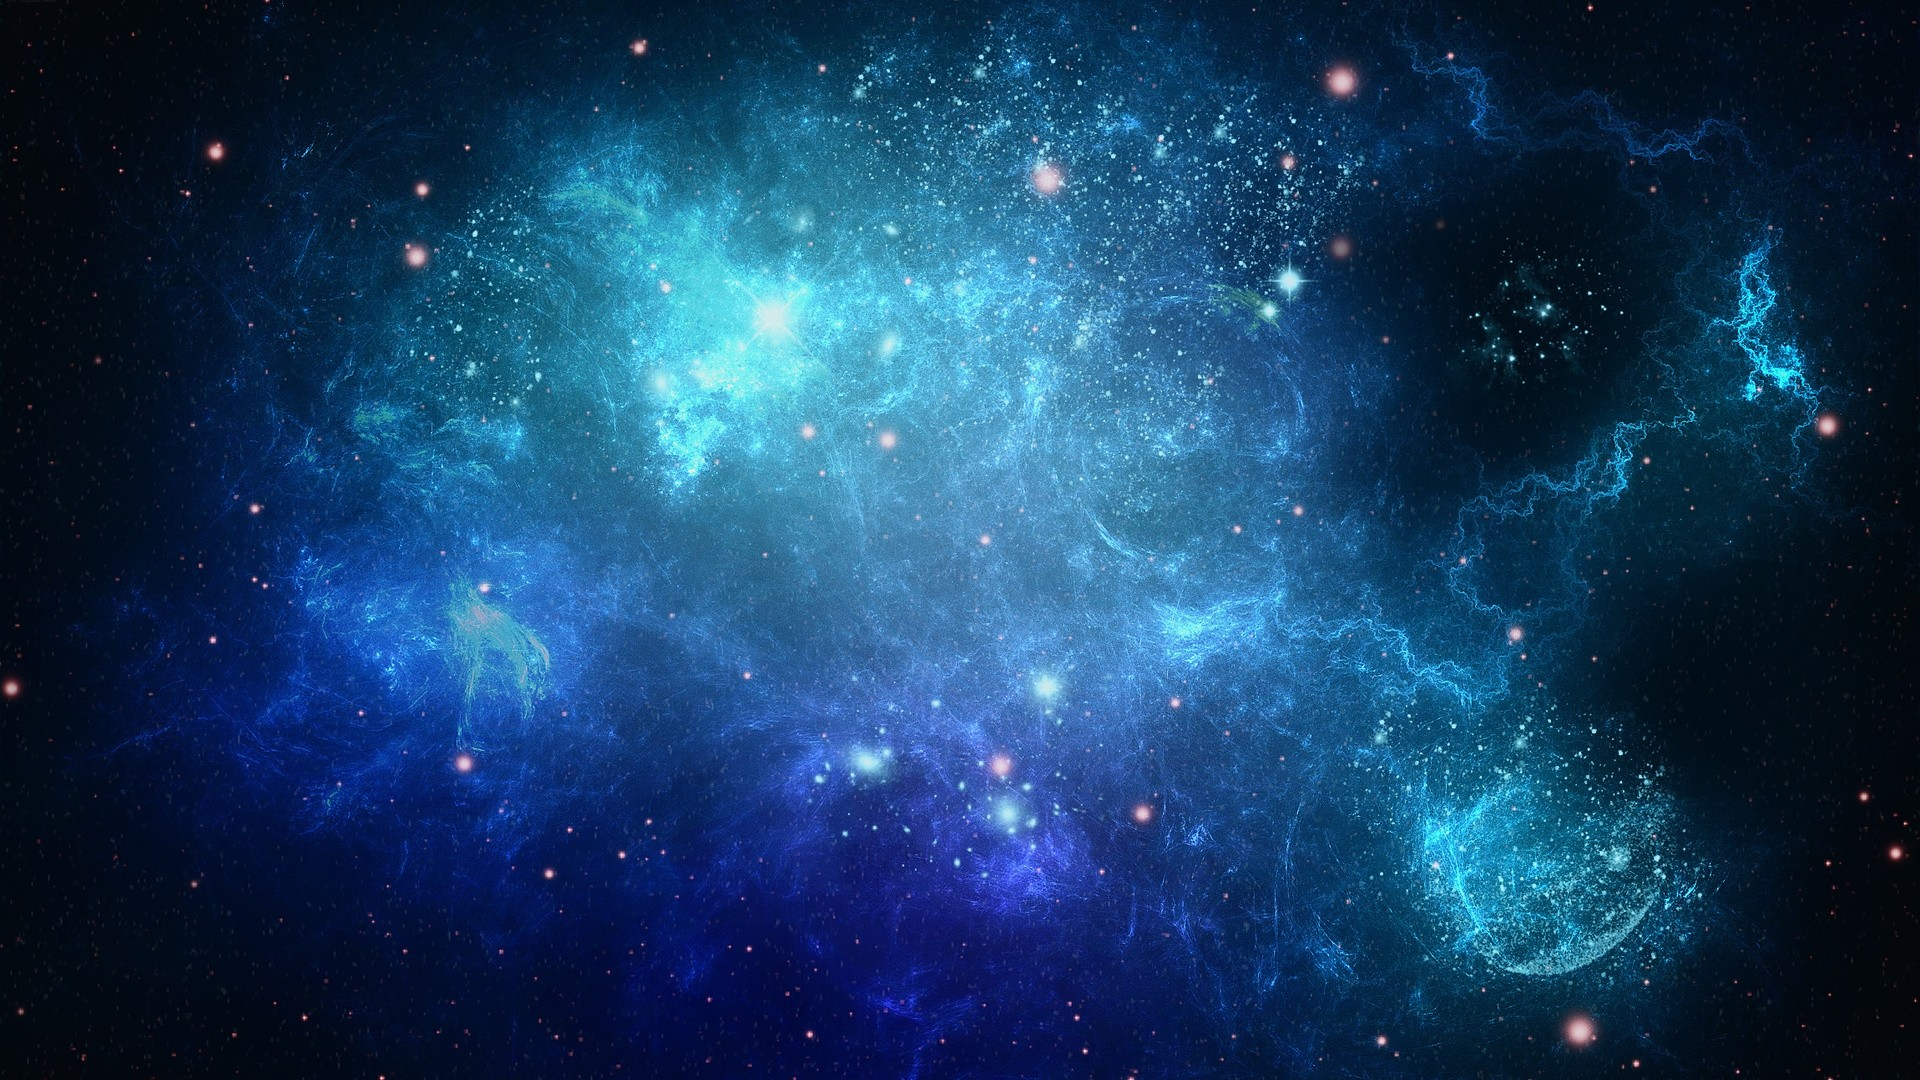 Abstract Space Free Wallpaper